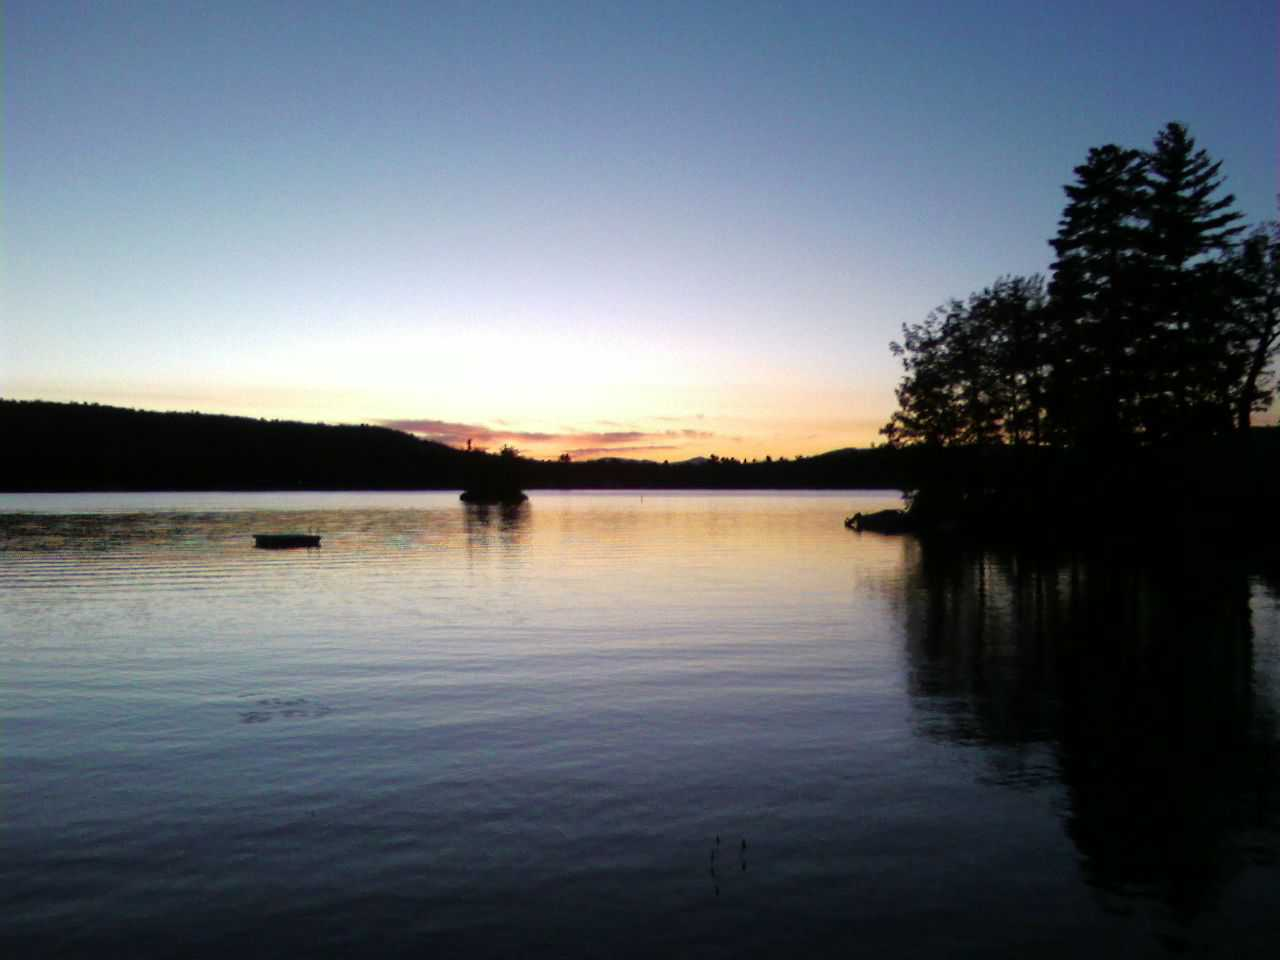 Sunset on Province Lake